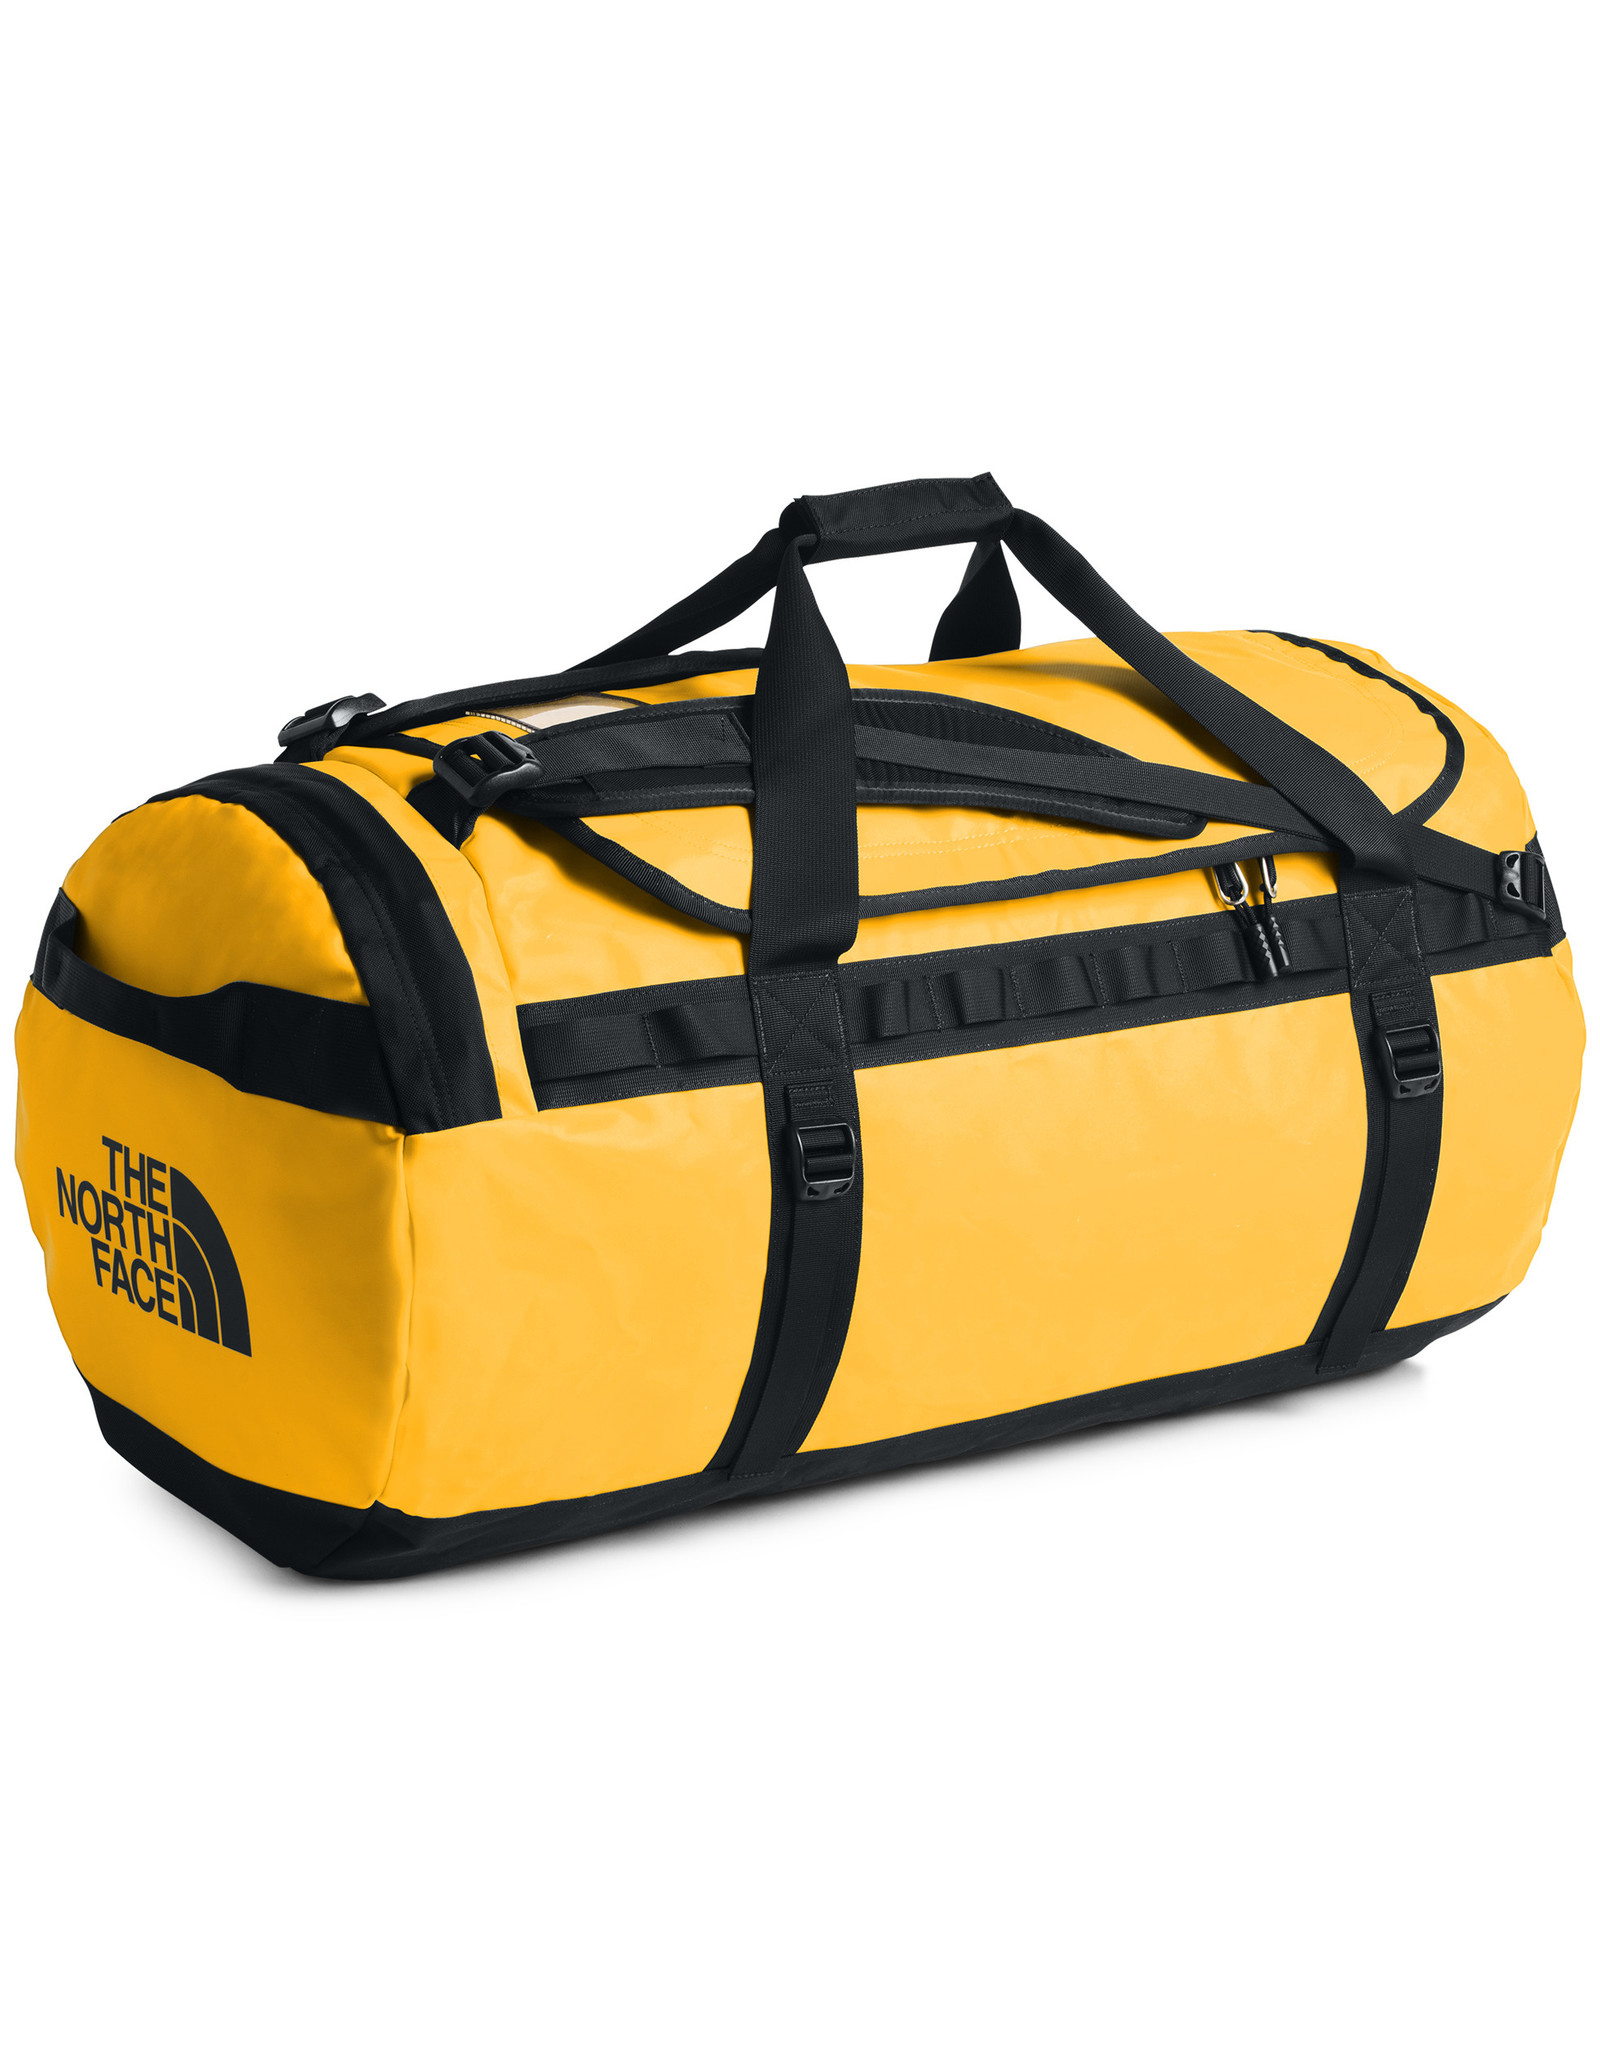 The North Face The North Face Base Camp Duffel—Large - S2020